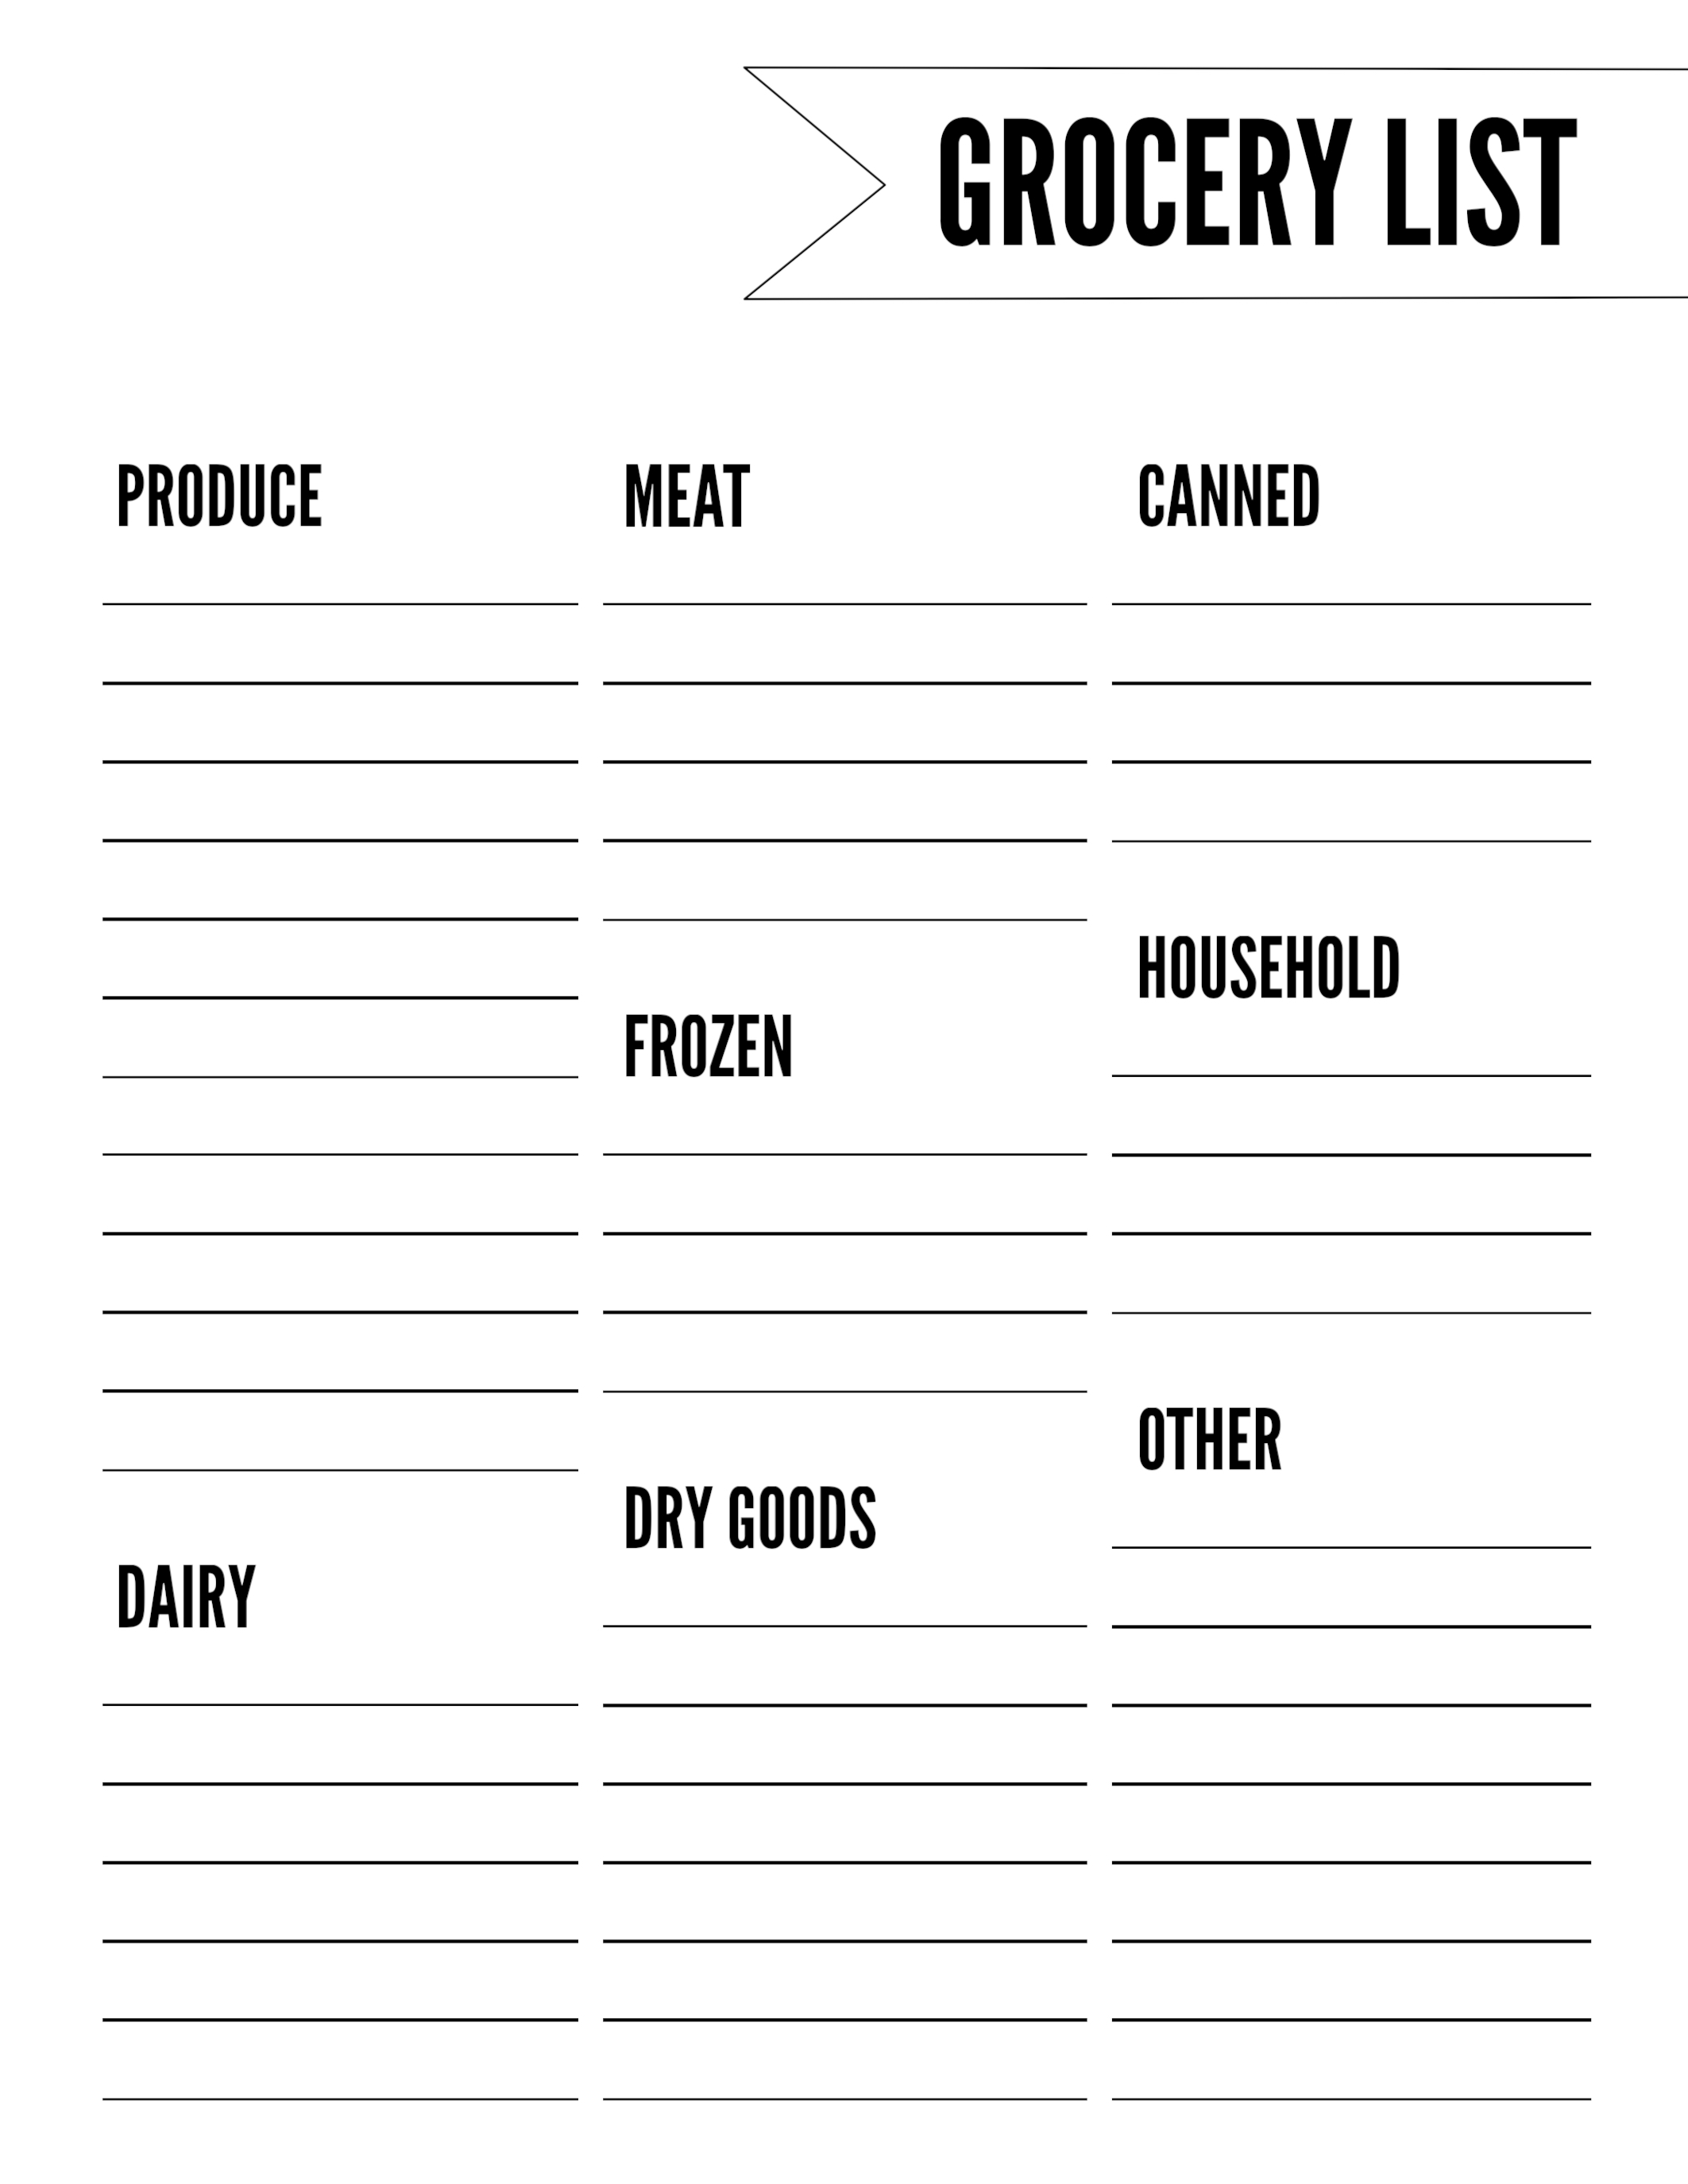 Free Printable Grocery List Template - Paper Trail Design